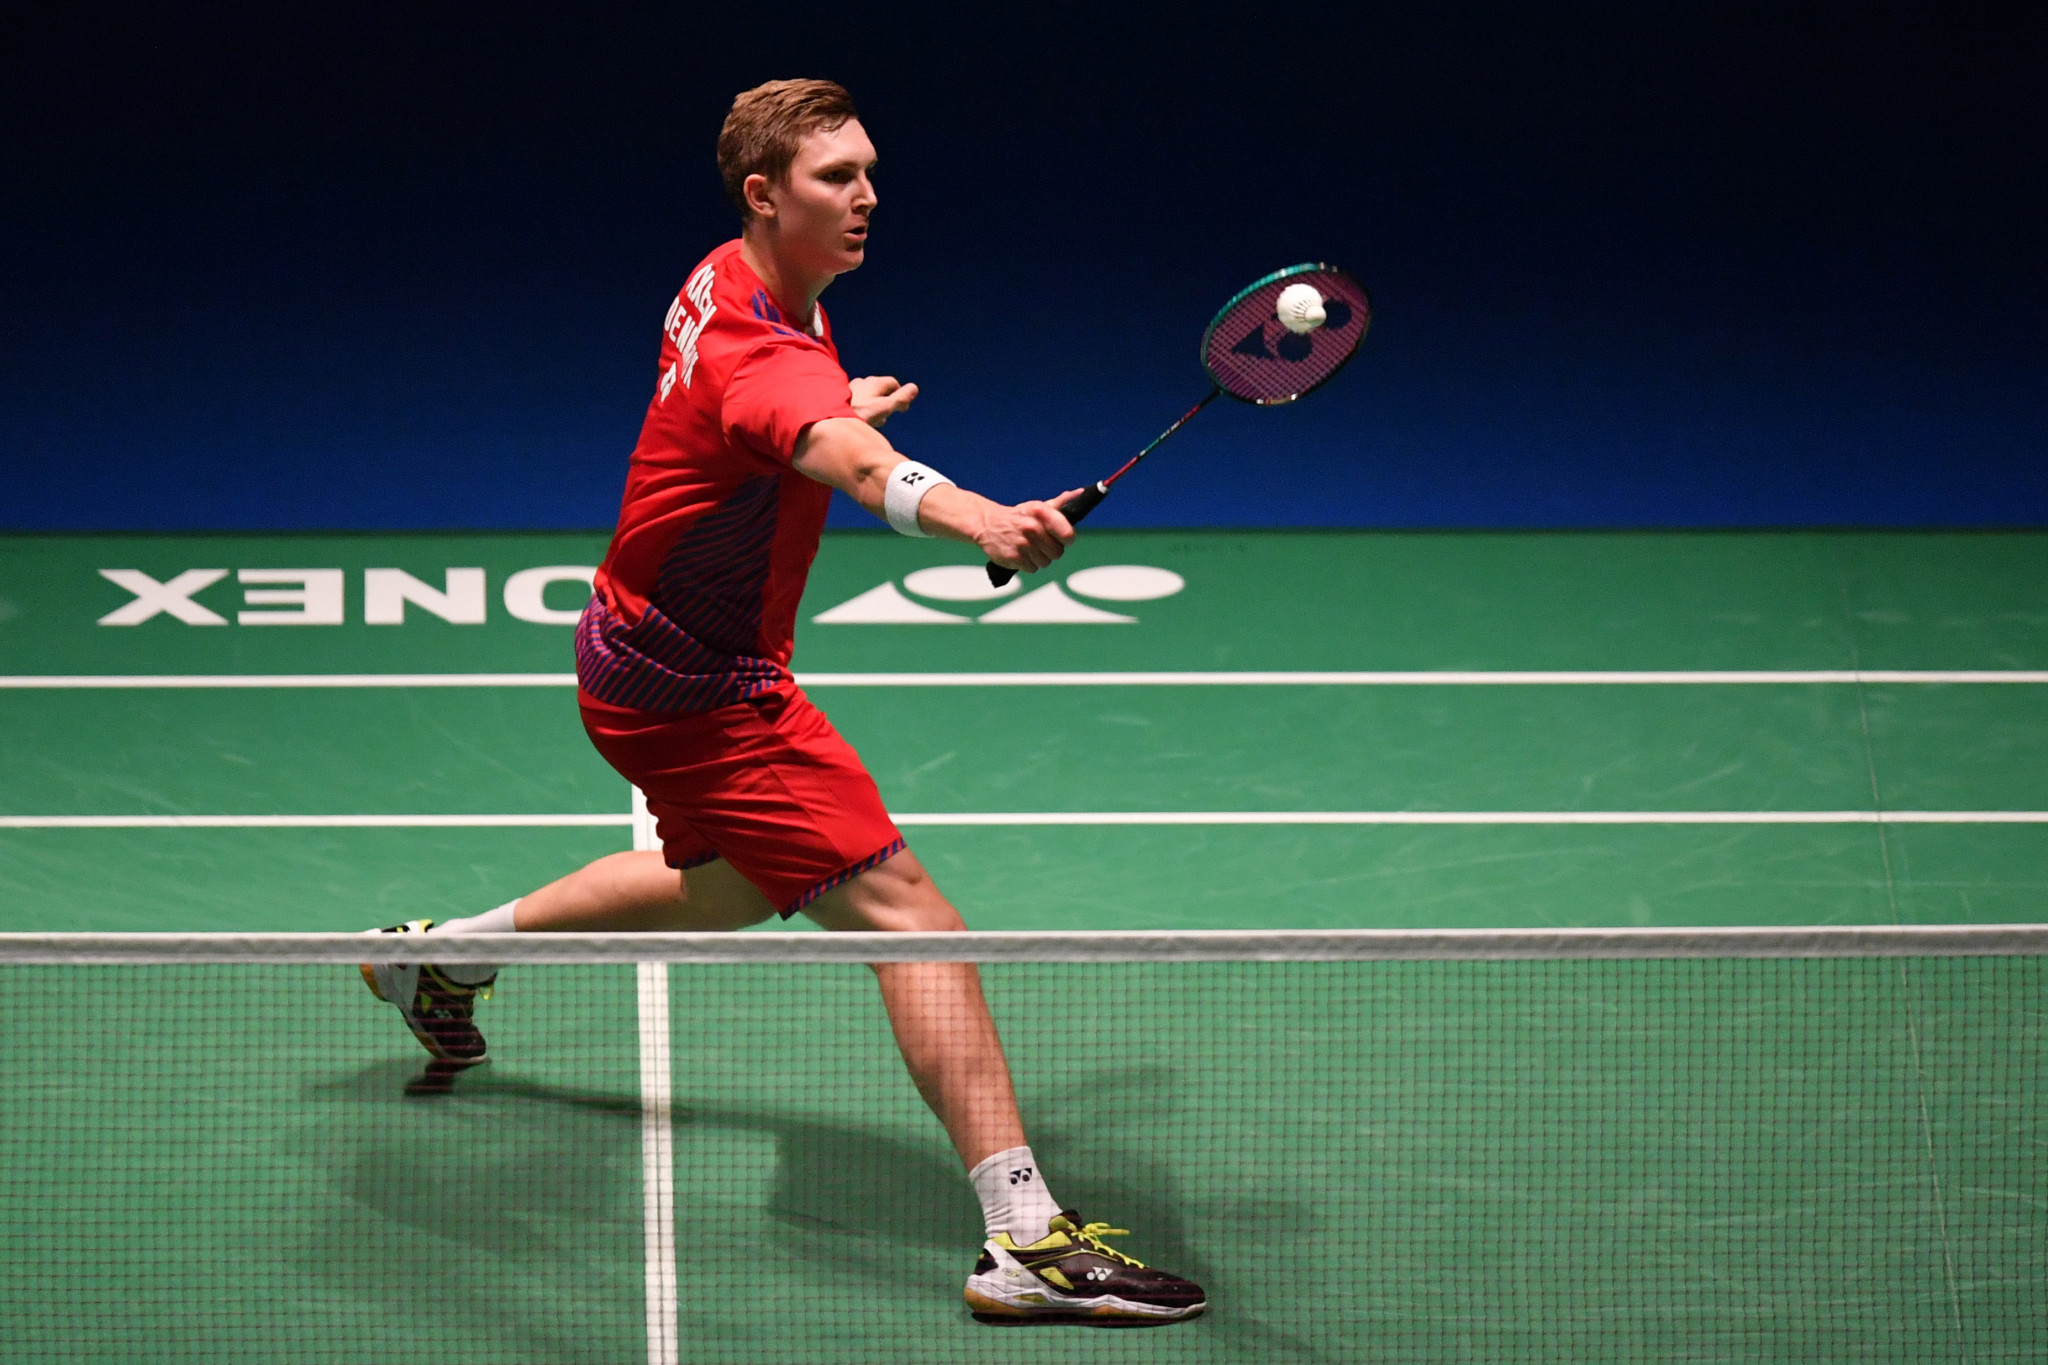 Indonesia's Ginting stuns top seed Axelsen to reach BWF China Open quarter-finals